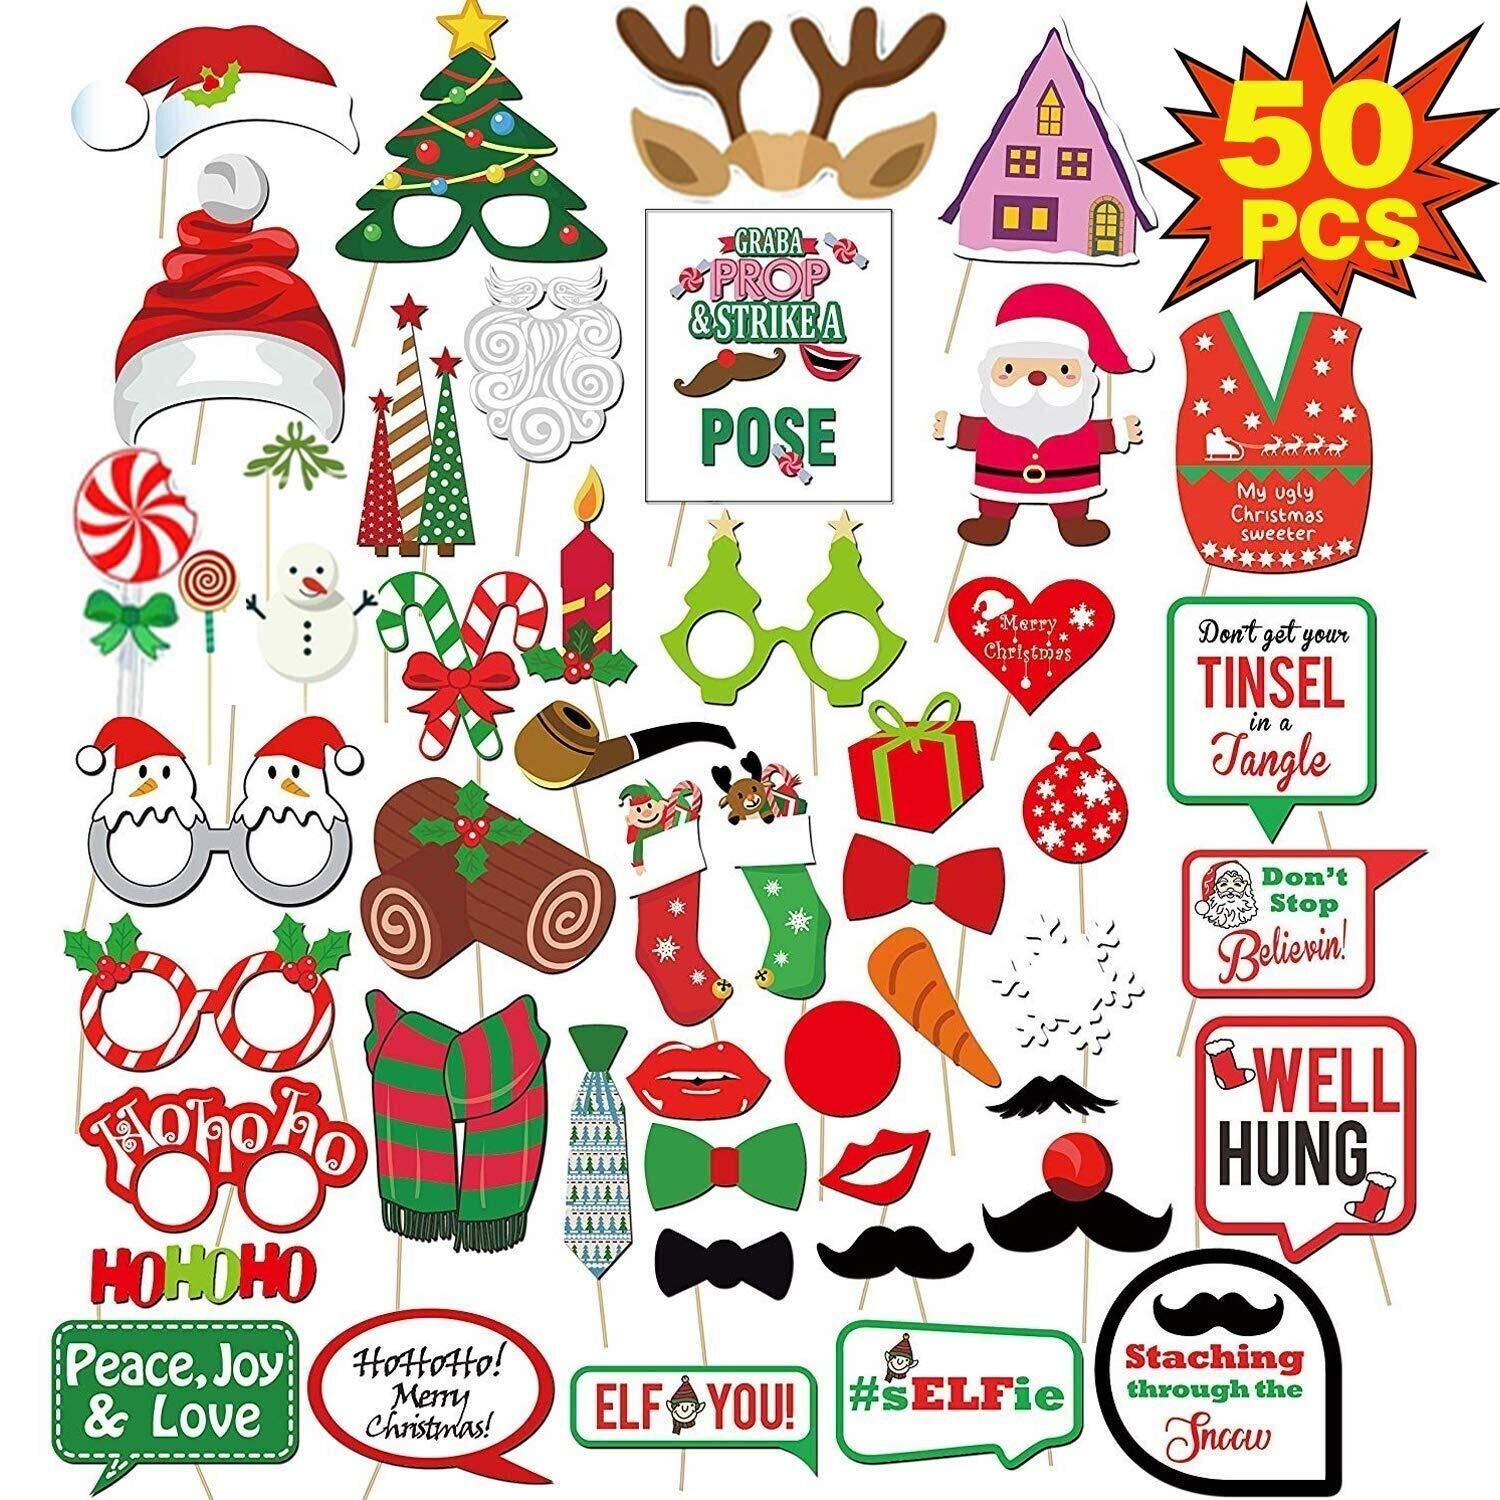 Amazoncom Woqoo 50pcs Christmas Photo Booth Props Happy Christmas